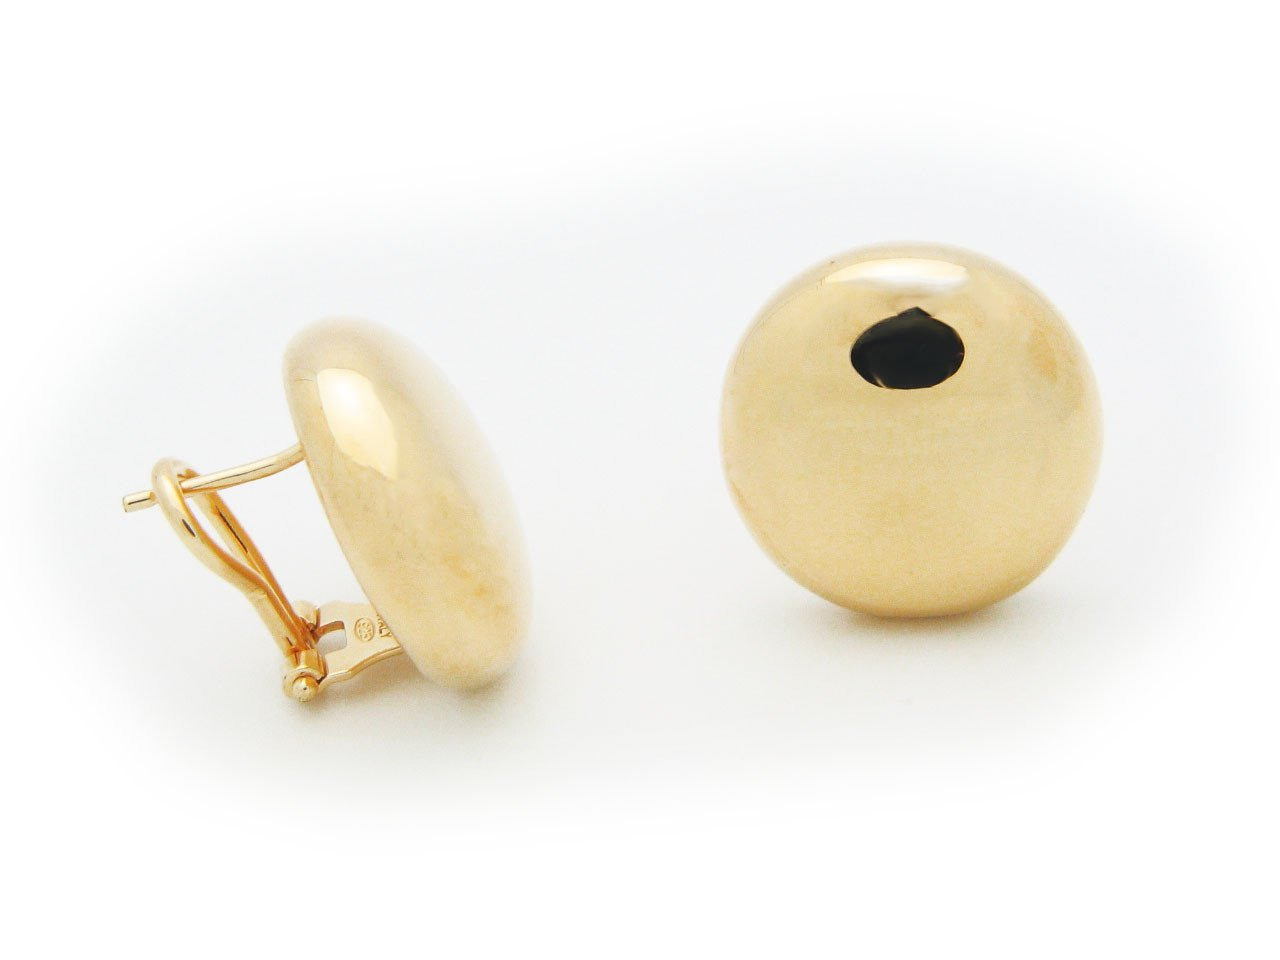 Modern Art Puffed Sun Omega Clip Earrings High Polish Silver Gold Plated by Fronay